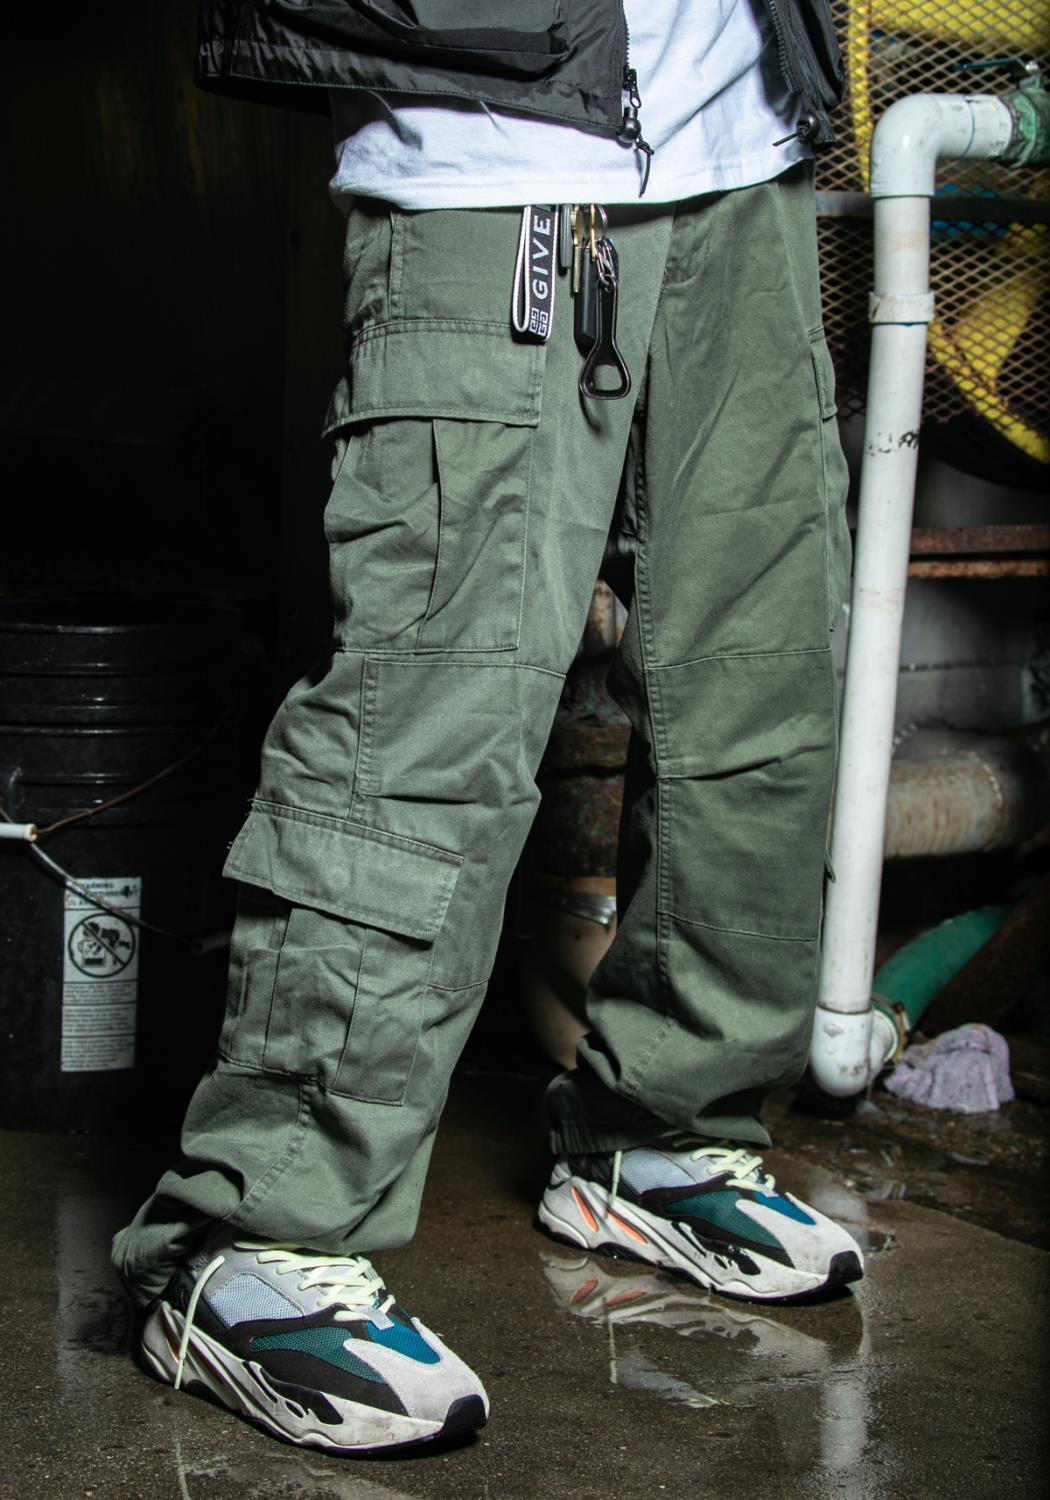 Rothco's Vintage Paratrooper Fatigue Pants